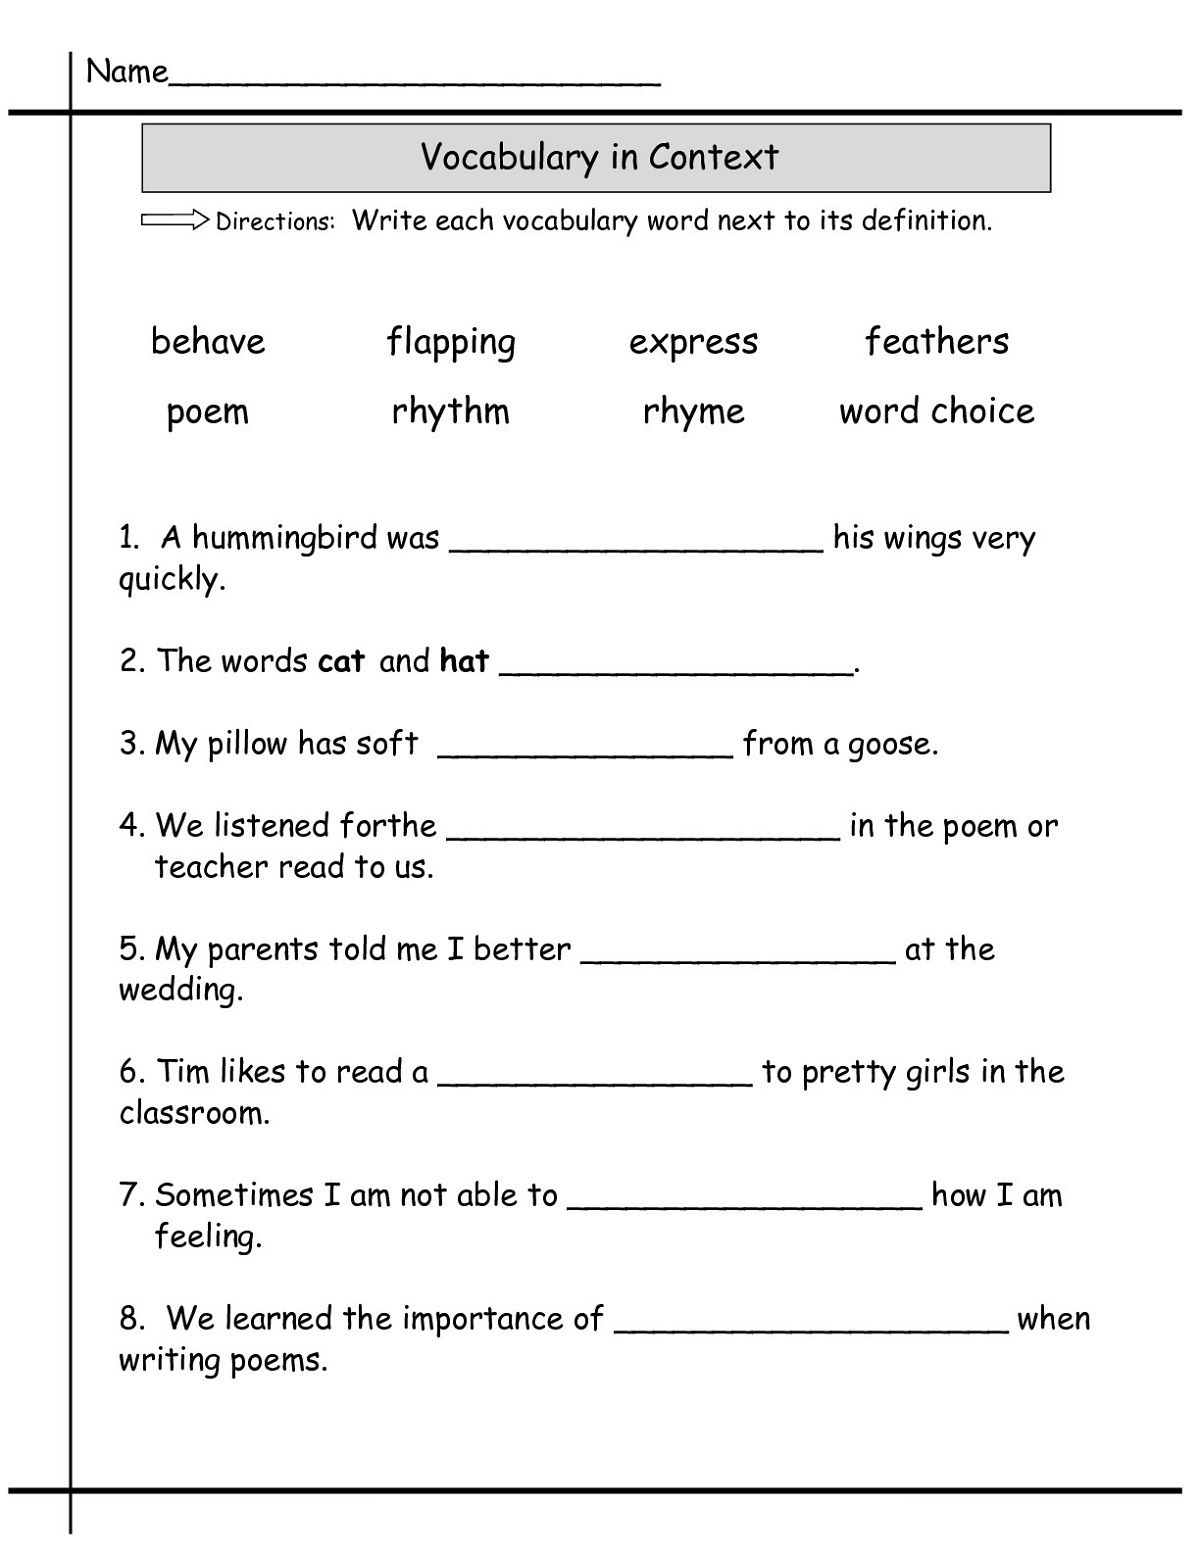 Second Grade Worksheets Vocabulary Learning Printable